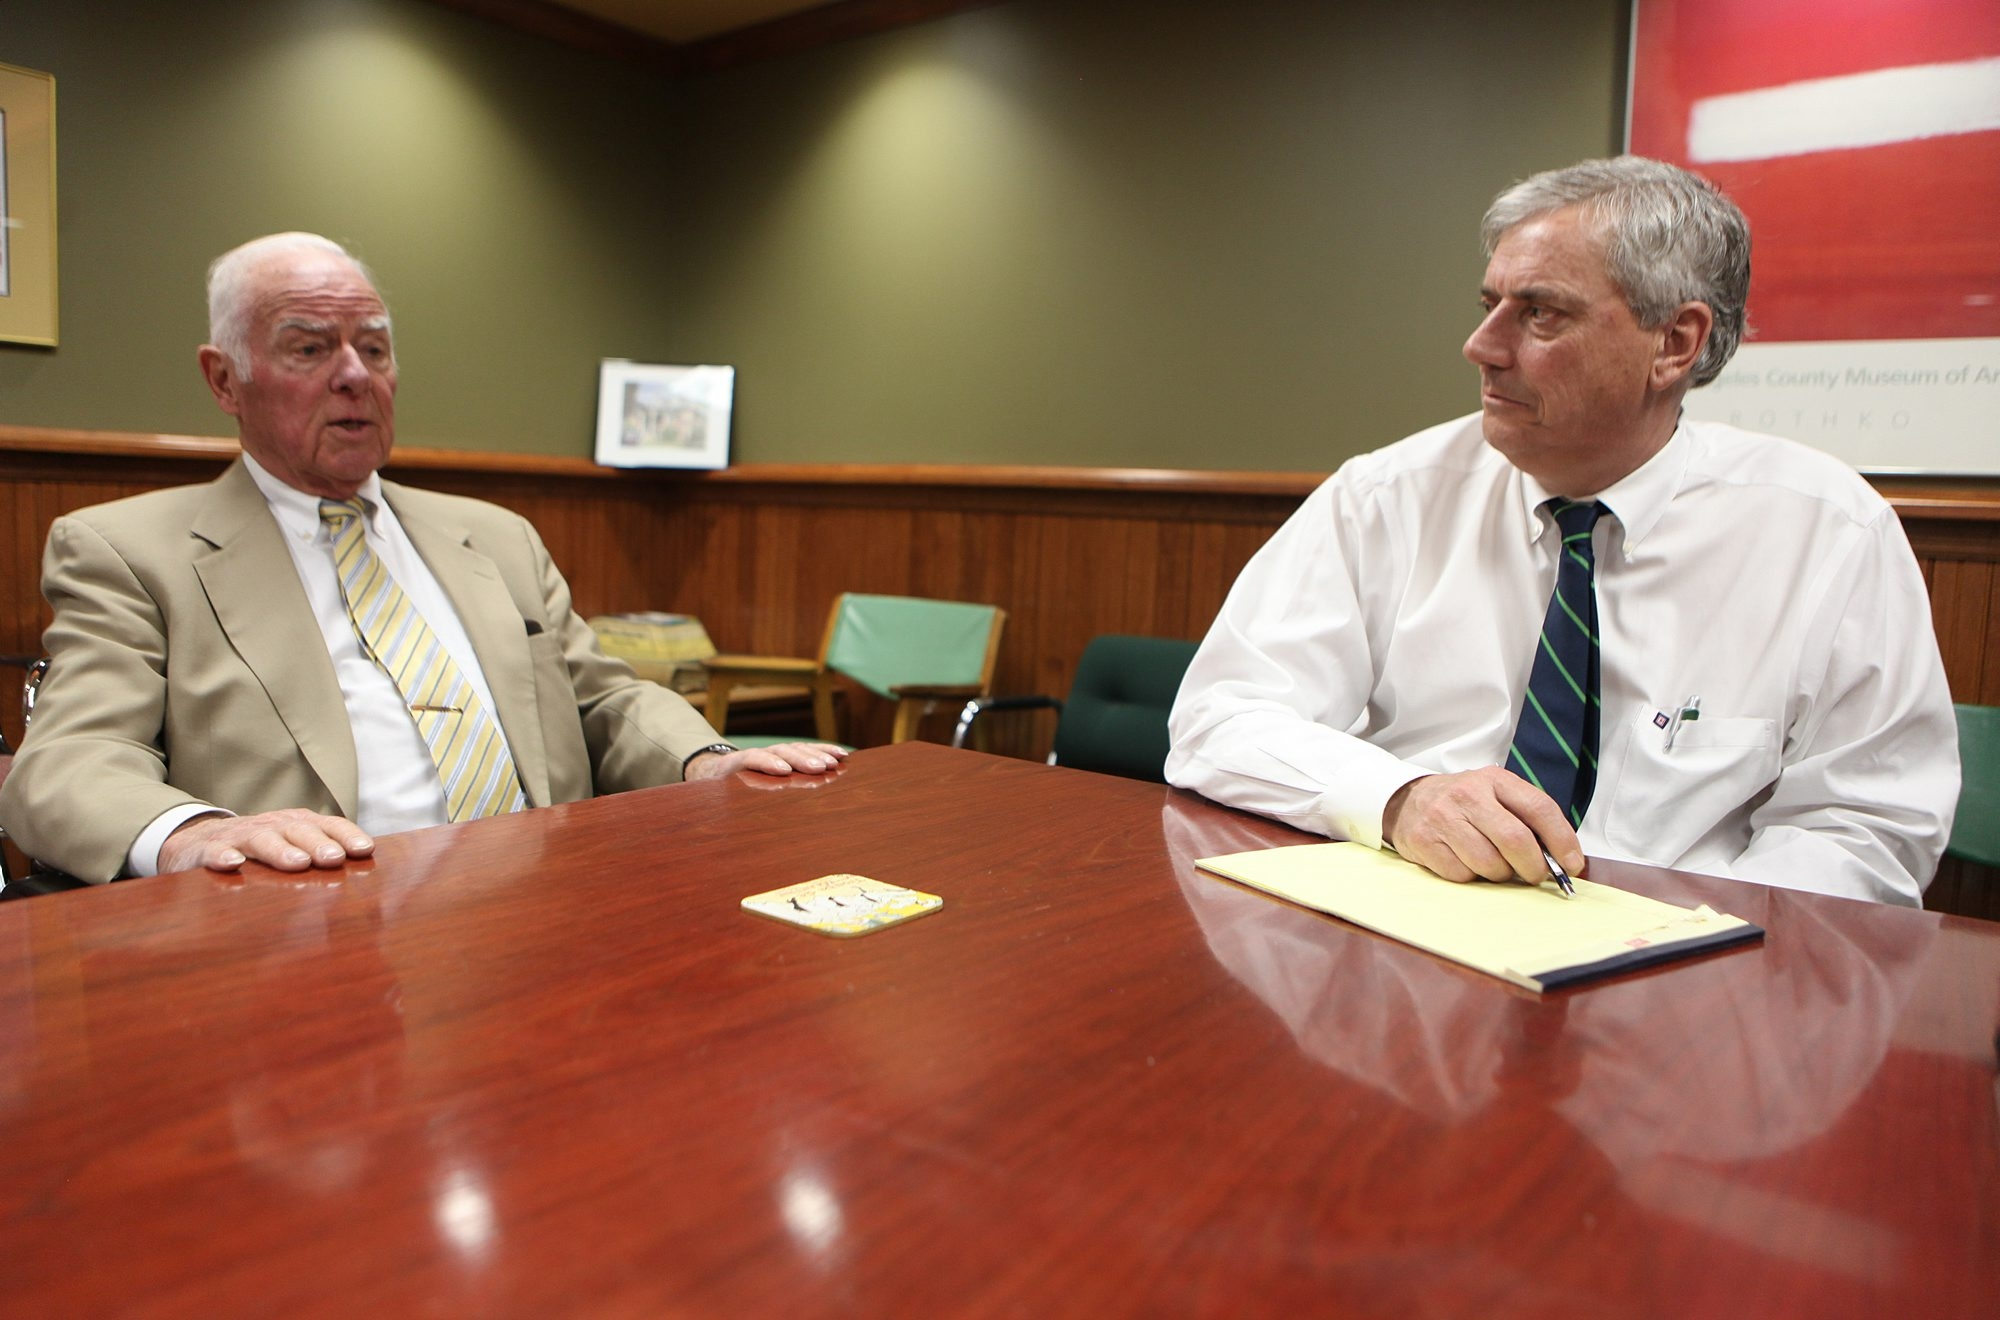 """Max Becker Jr., left, and Charles """"Sam"""" Gurney, of Gurney, Becker & Bourne, in their Buffalo offices, Wednesday, April 9, 2014.   (Charles Lewis/Buffalo News)"""